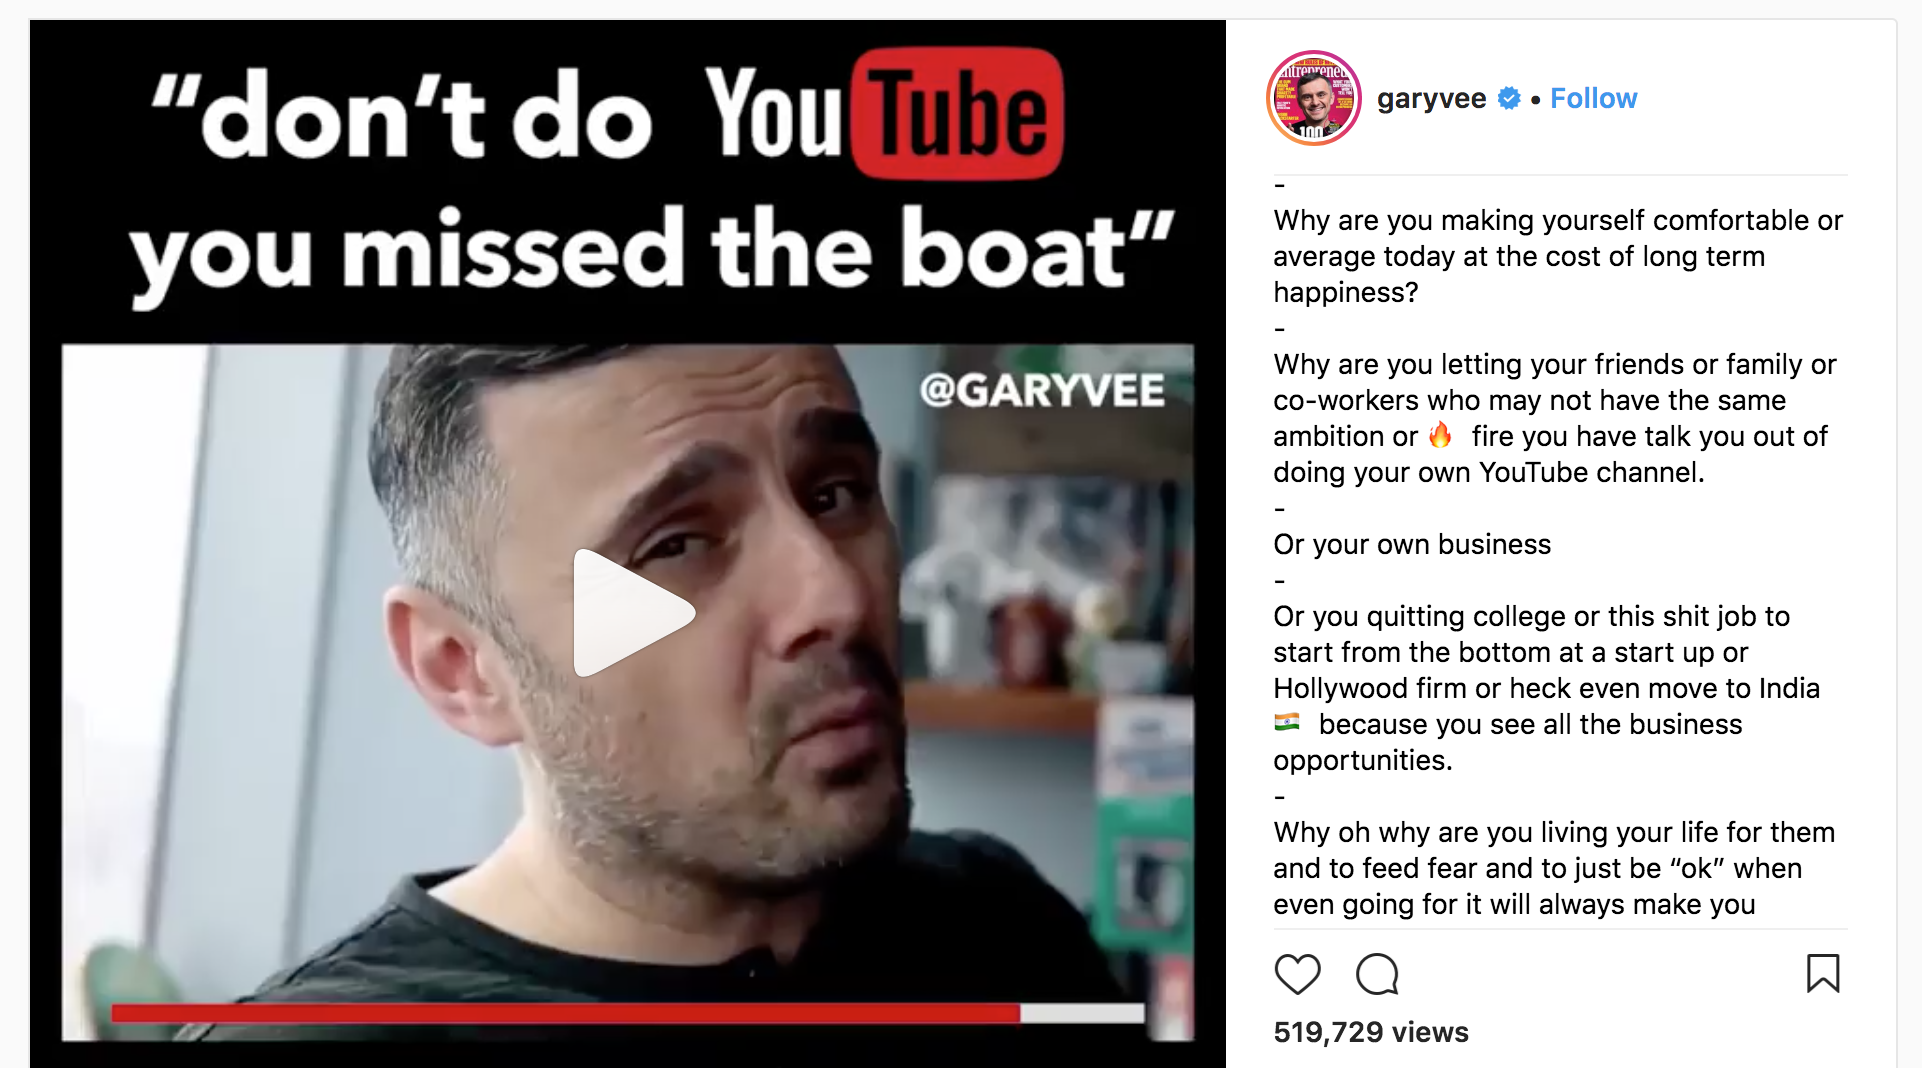 While GaryVee's advice to encourage people to create something.